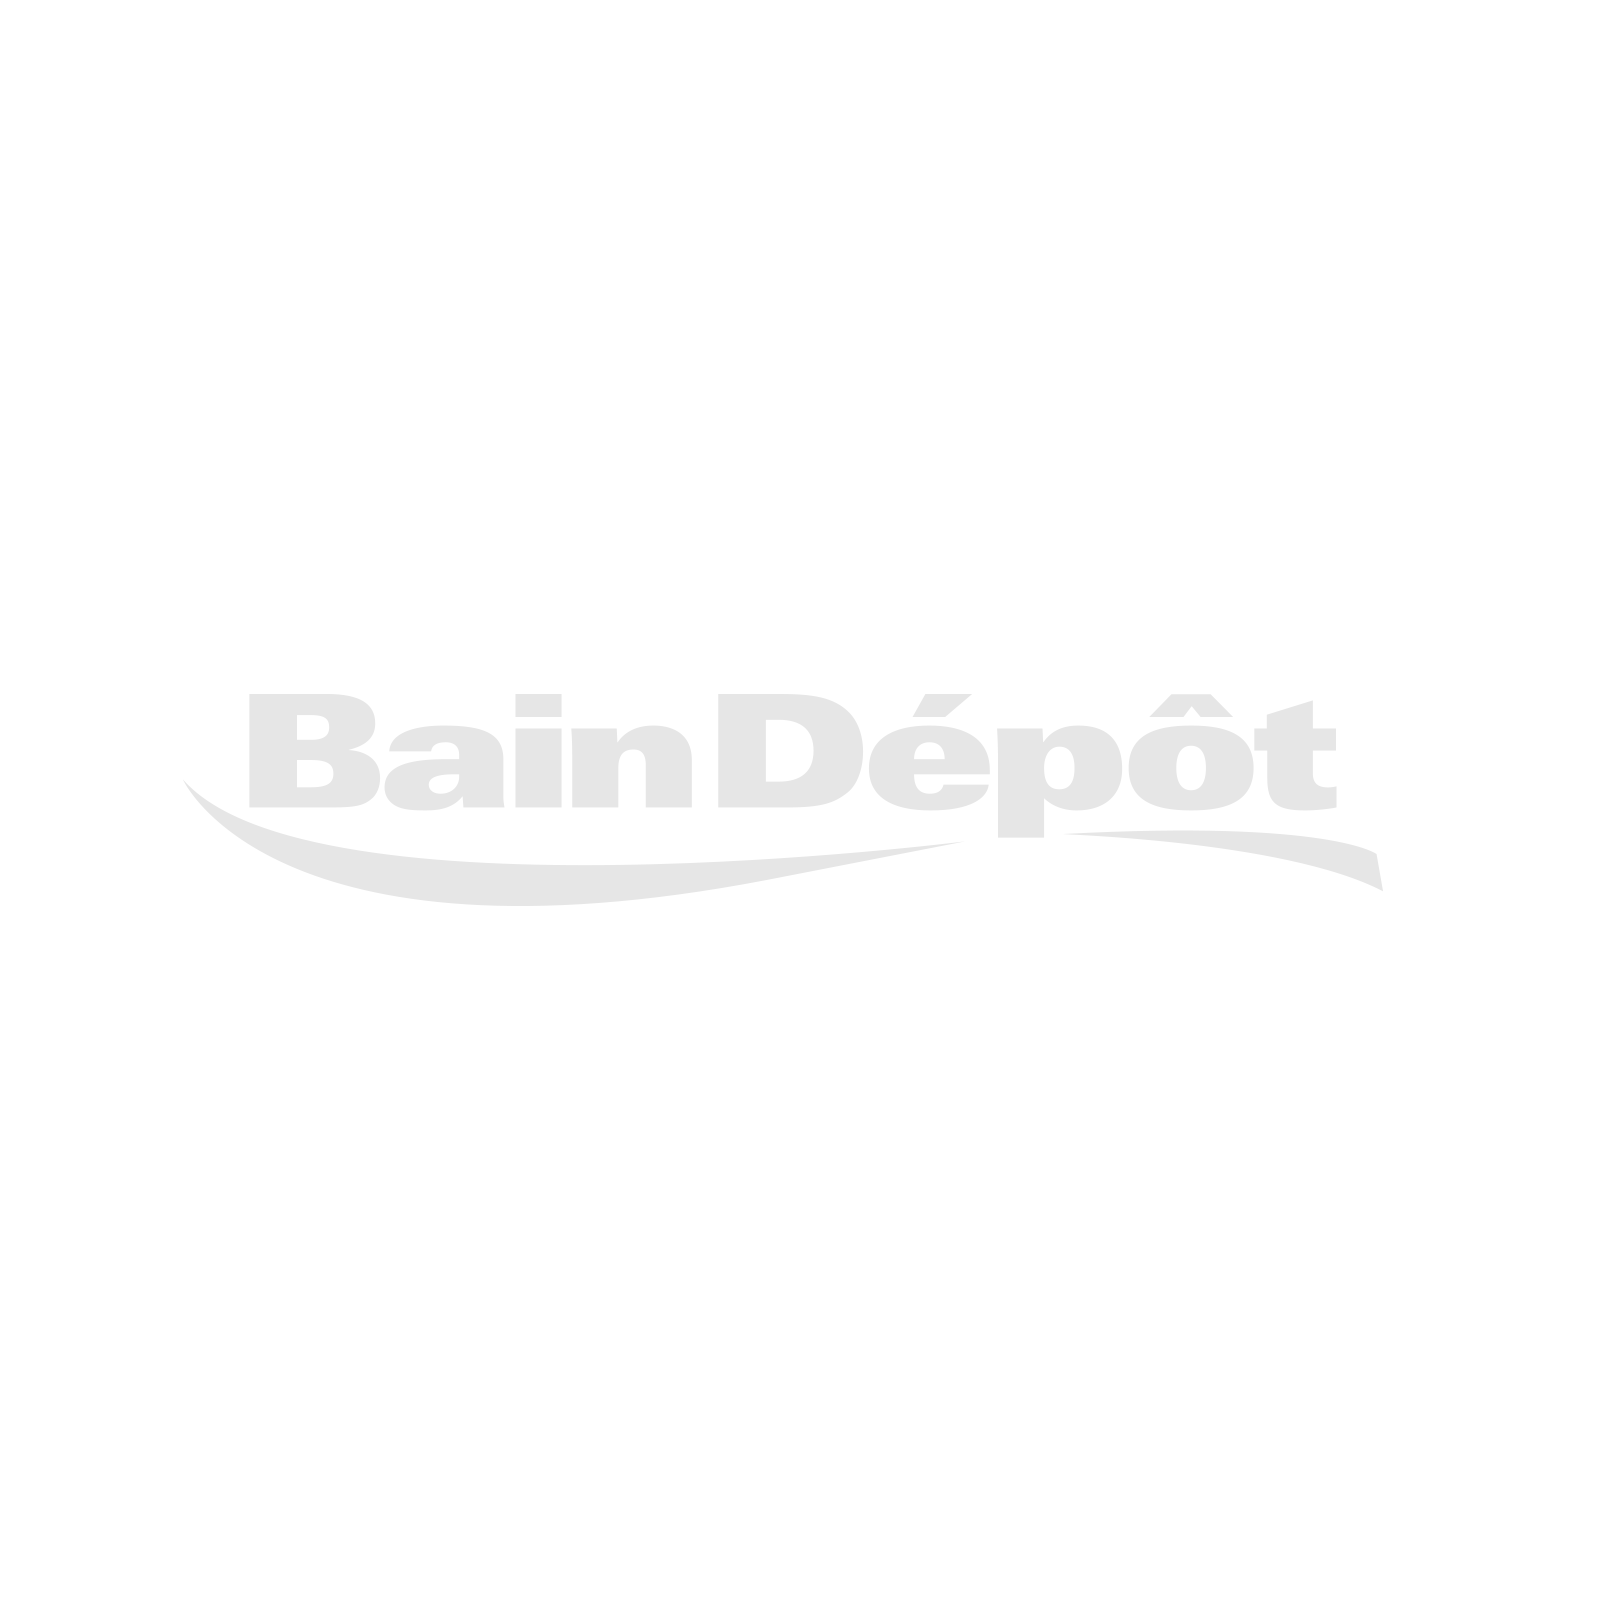 "36"" x 36"" Belly shower kit with base and door"